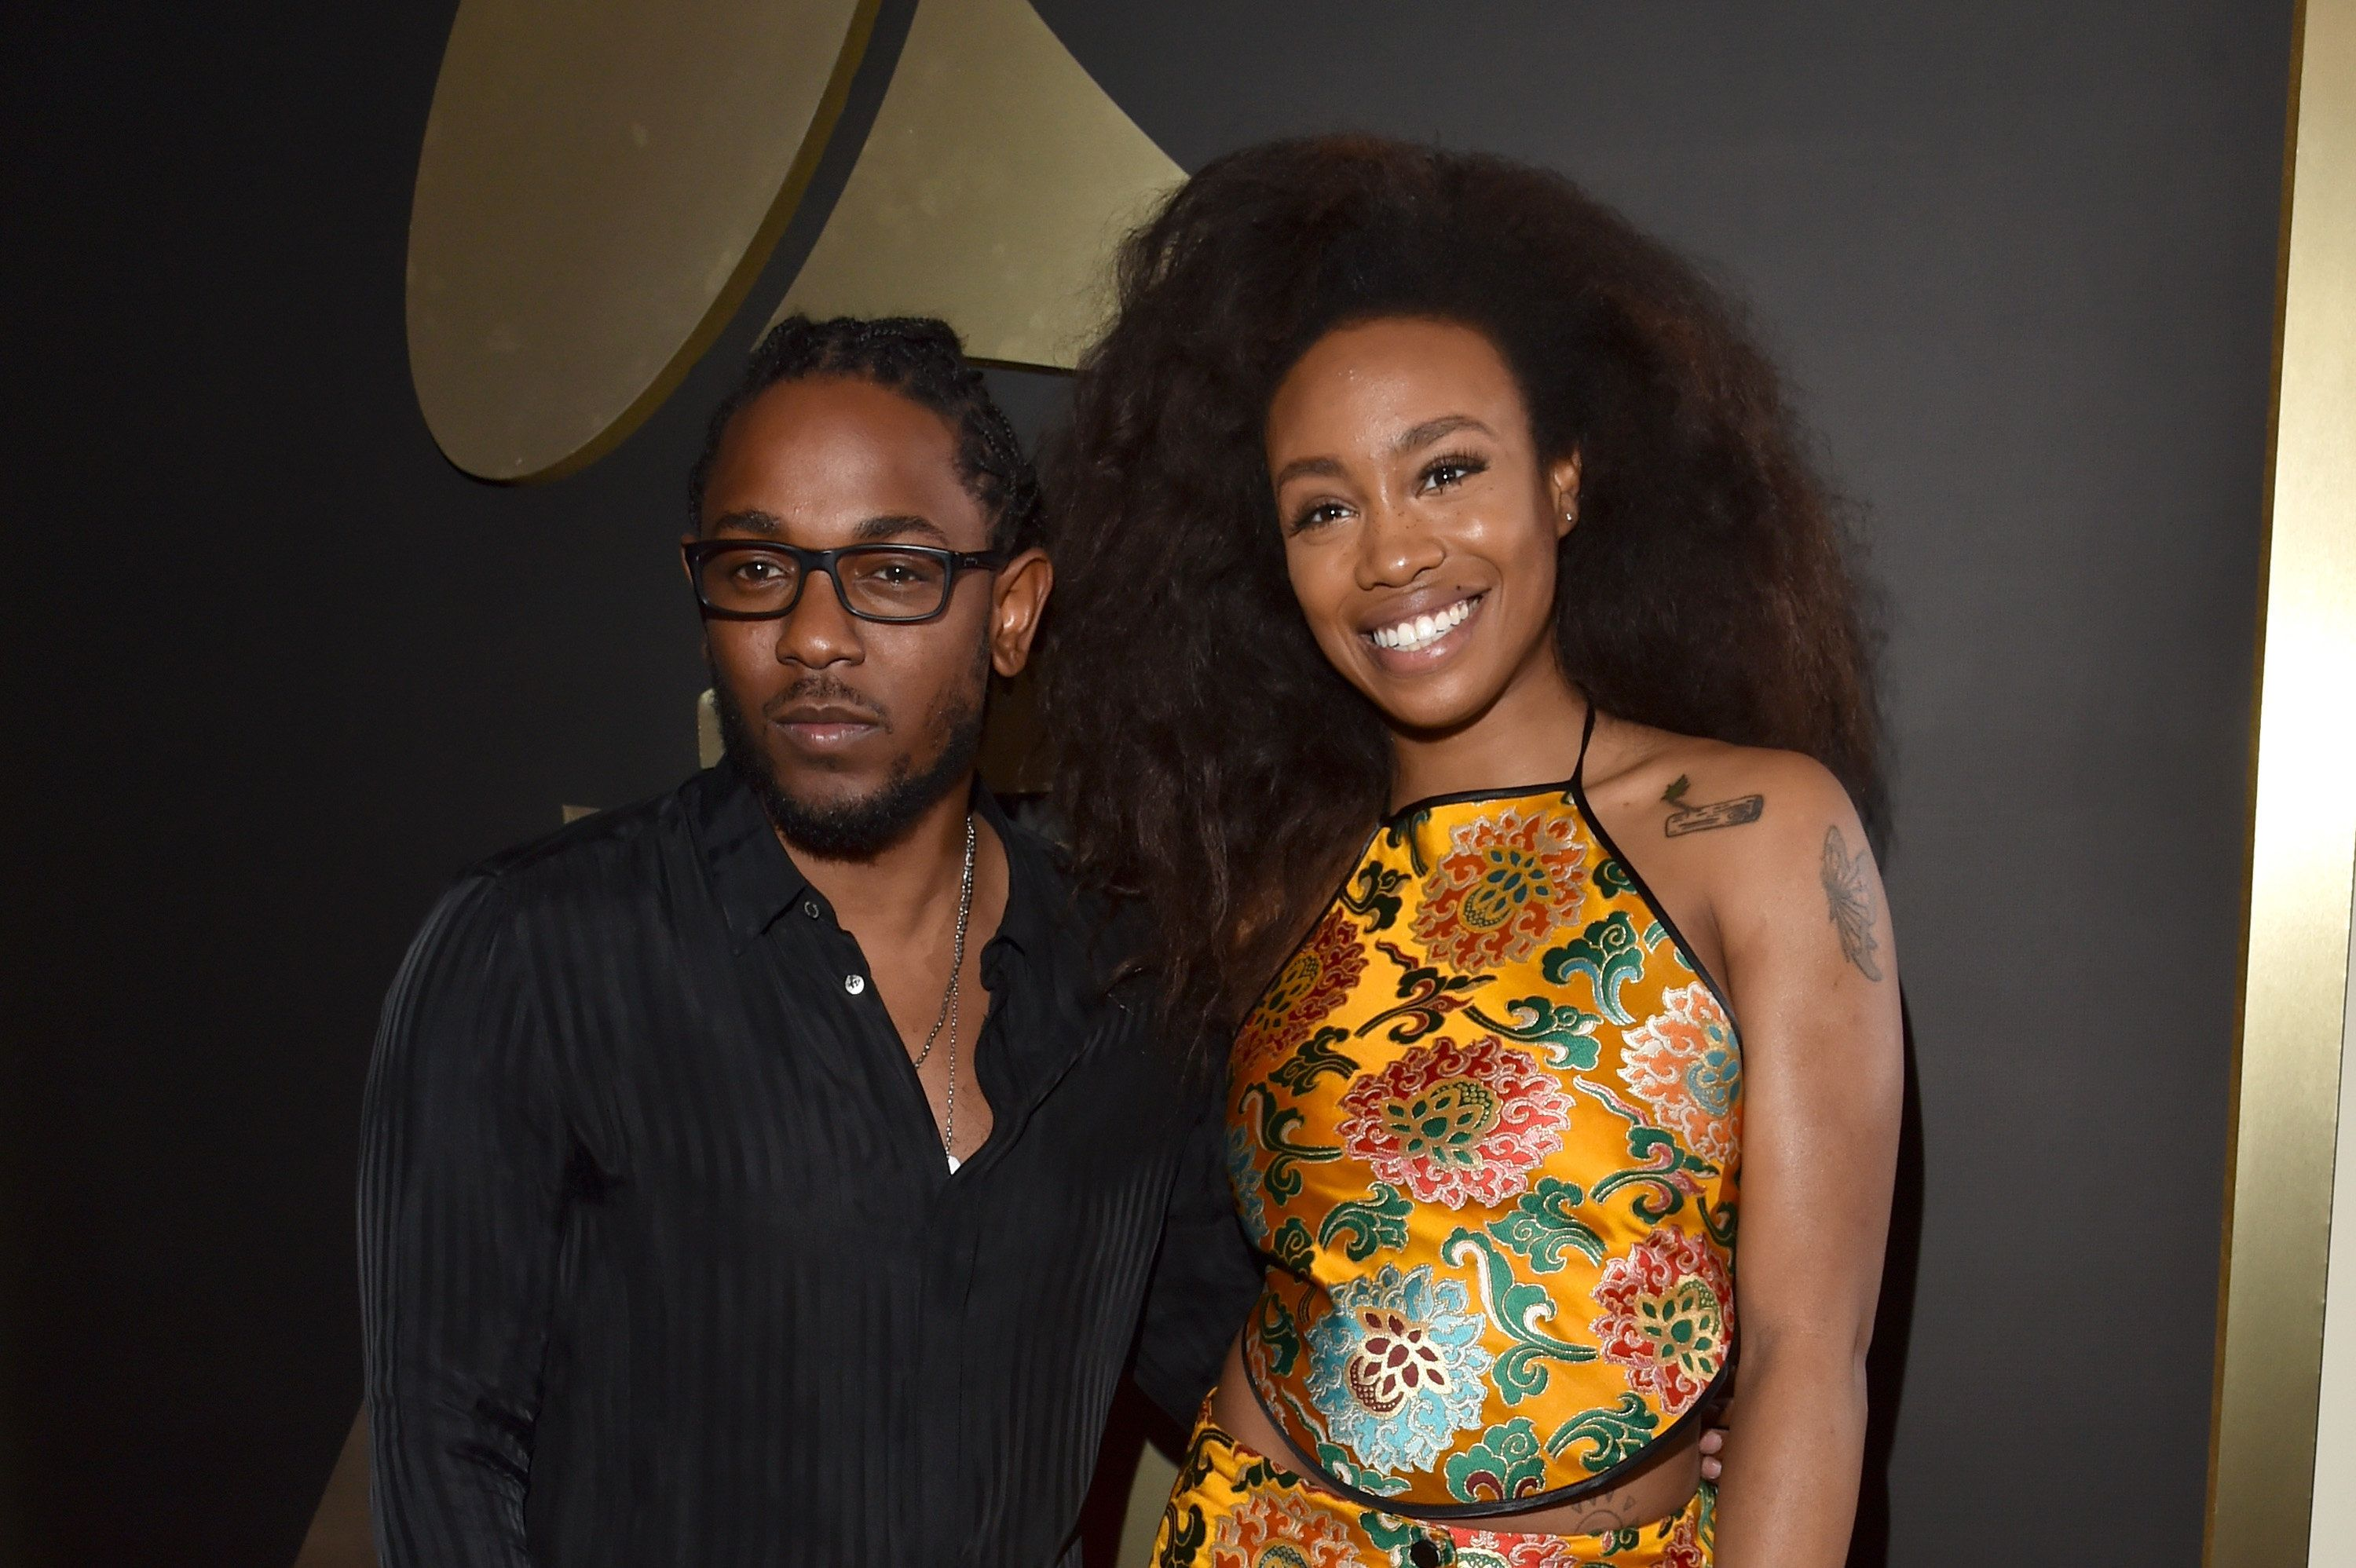 Kendrick Lamar and SZA Being Sued Over 'Black Panther' Music Video